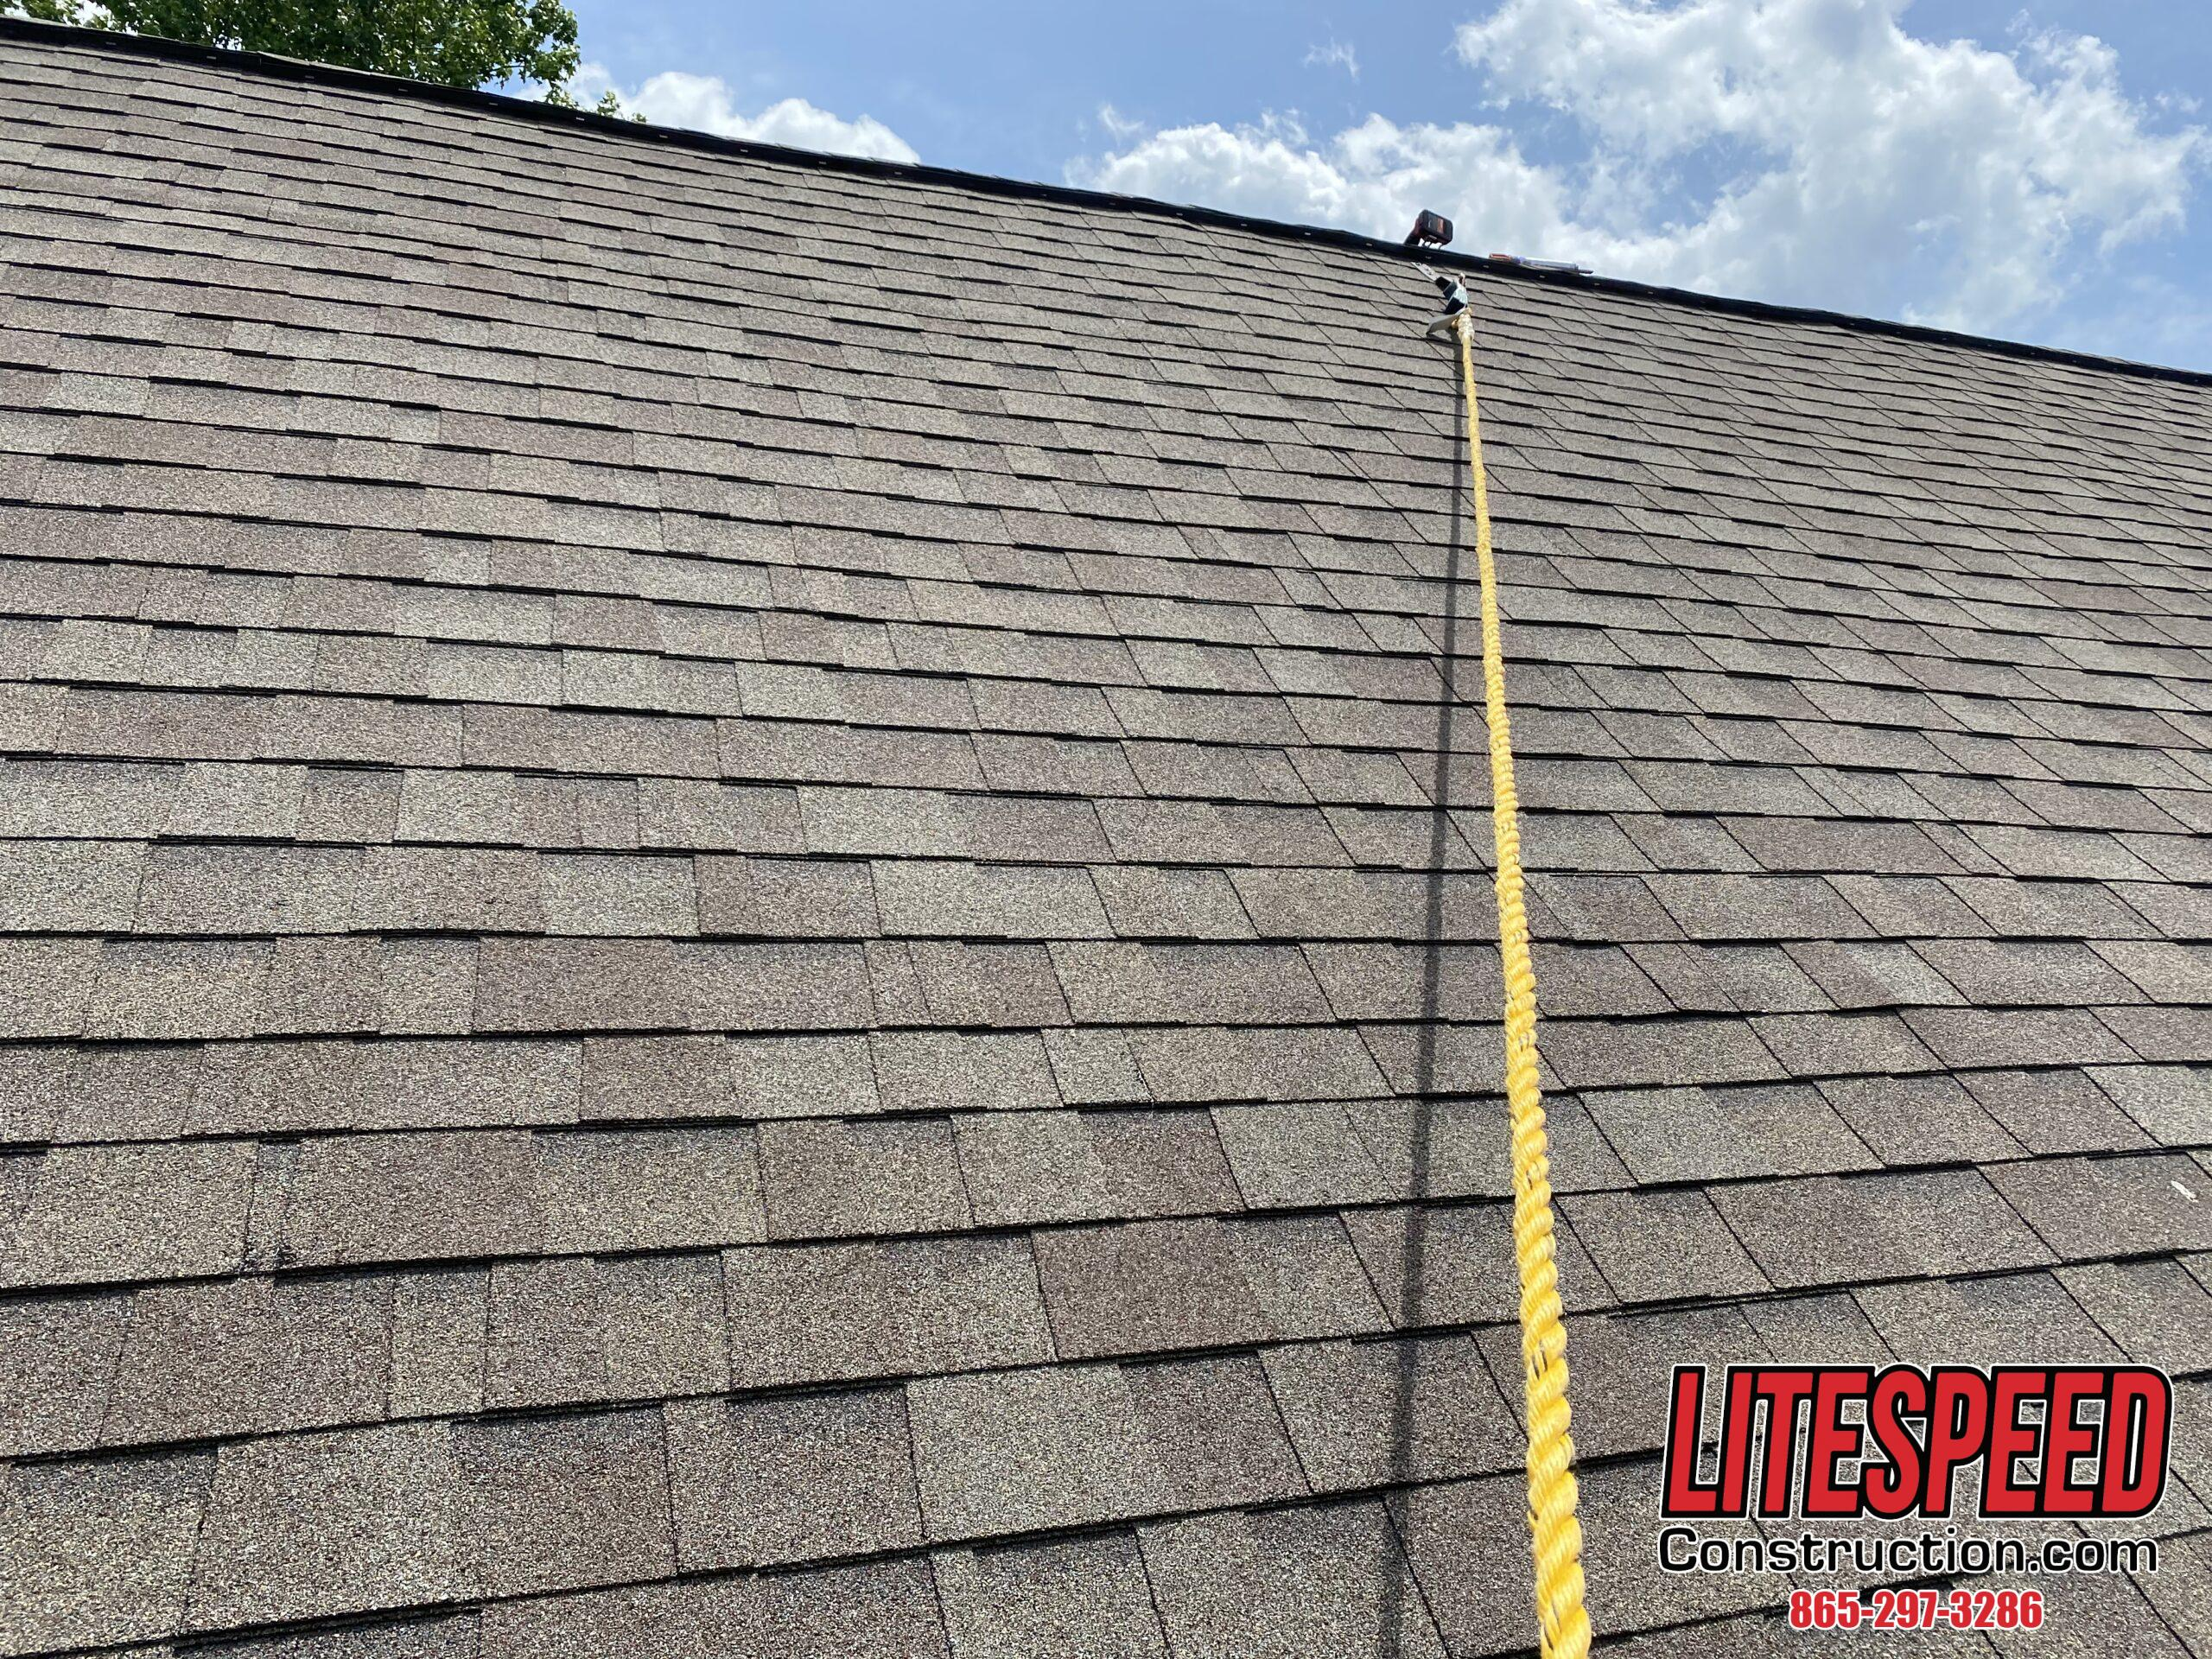 This is a picture of shingles in good shape with a rope in the middle